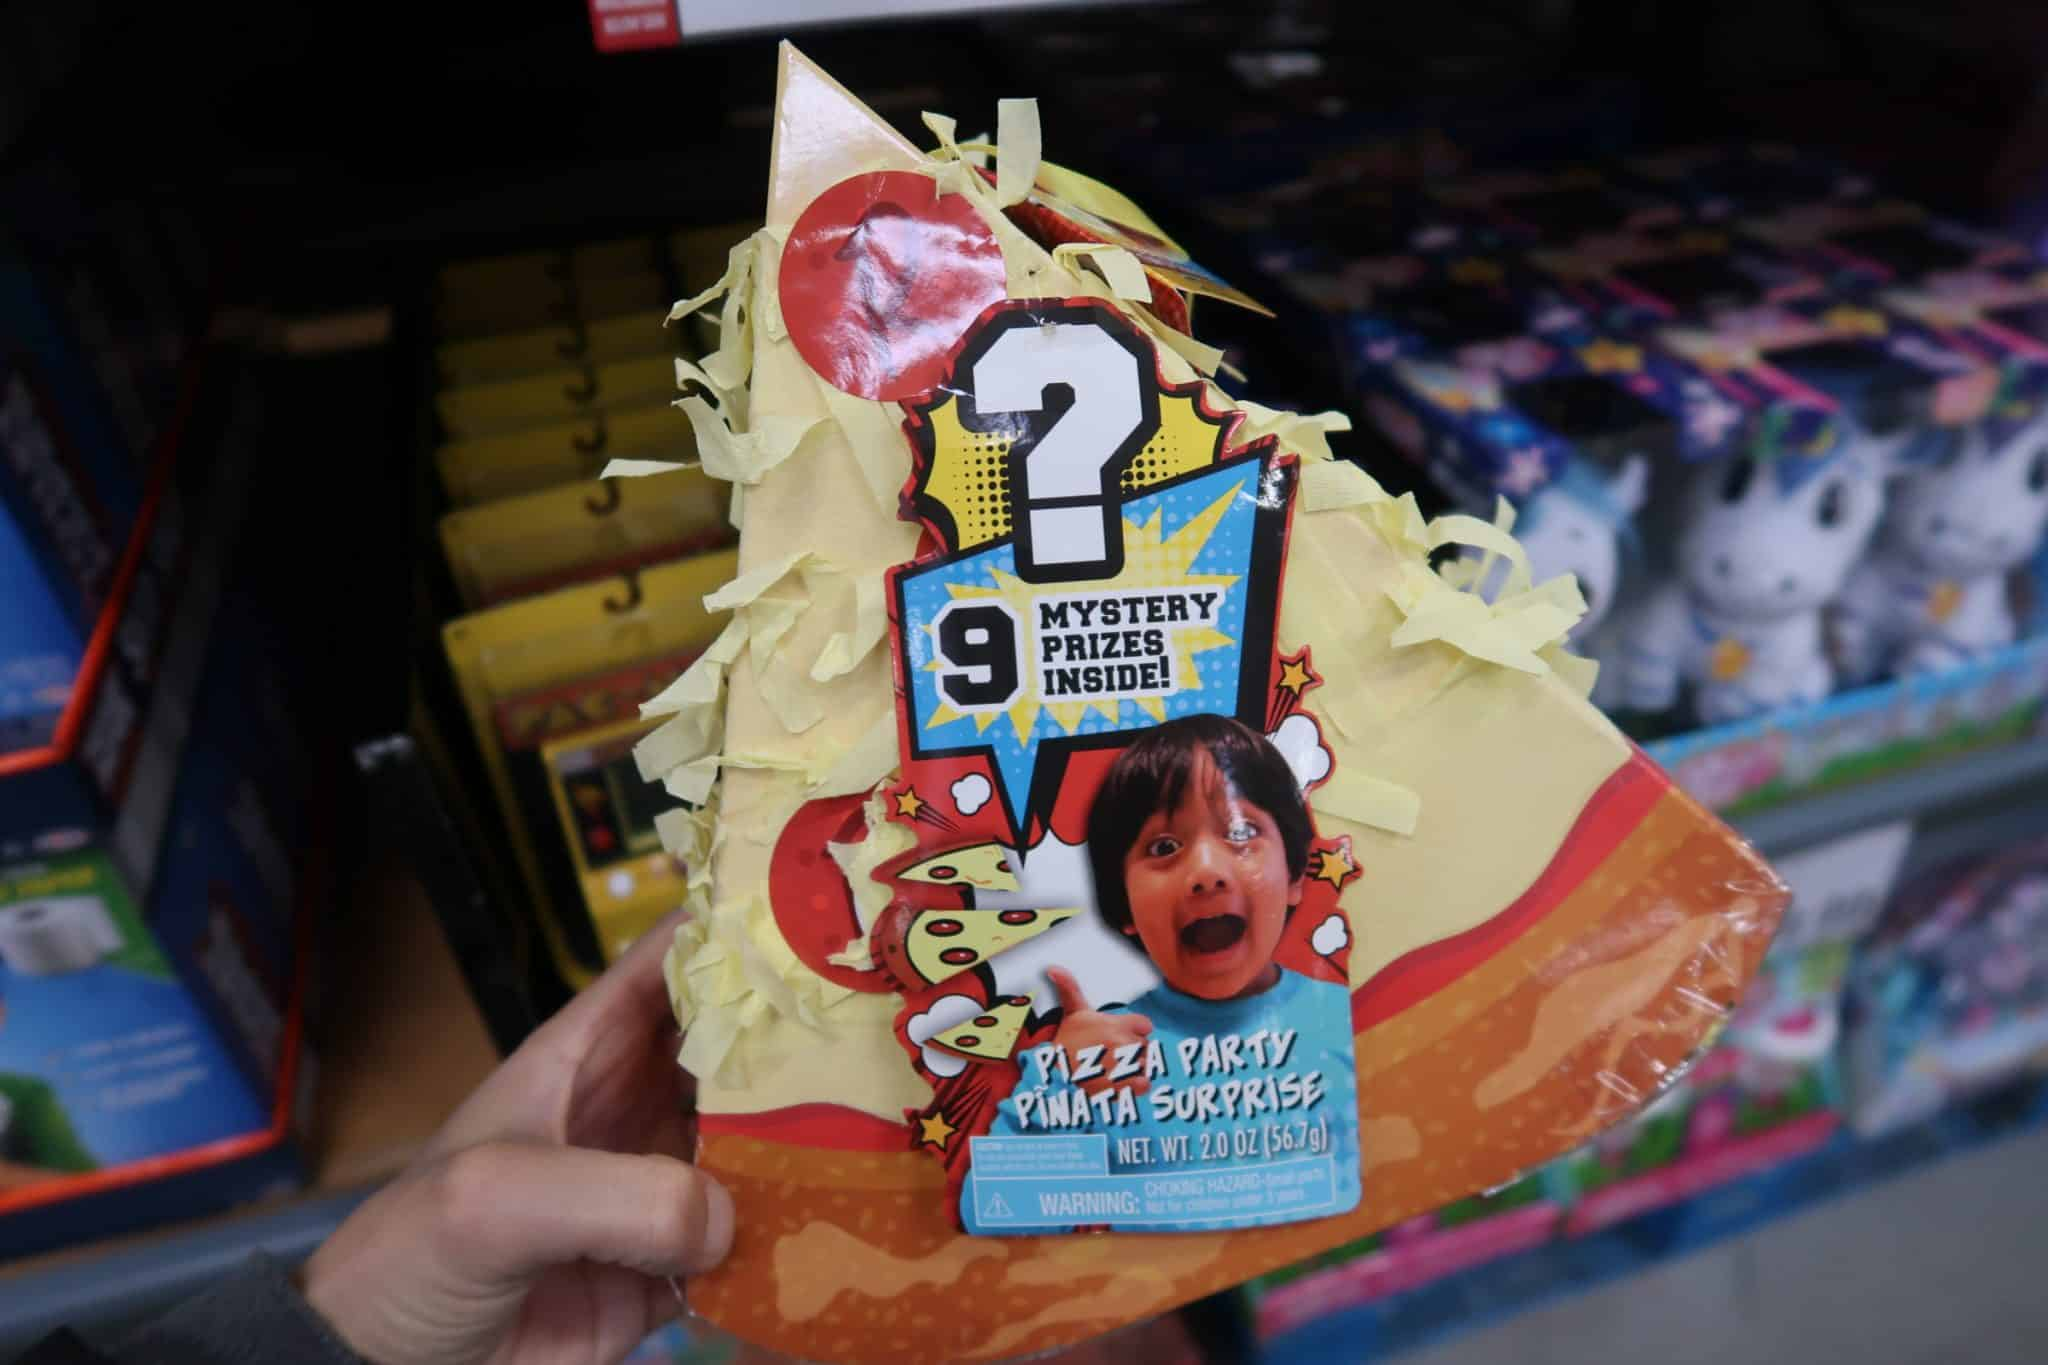 Ryan's World Pizza Party Pinata ONLY $8.97